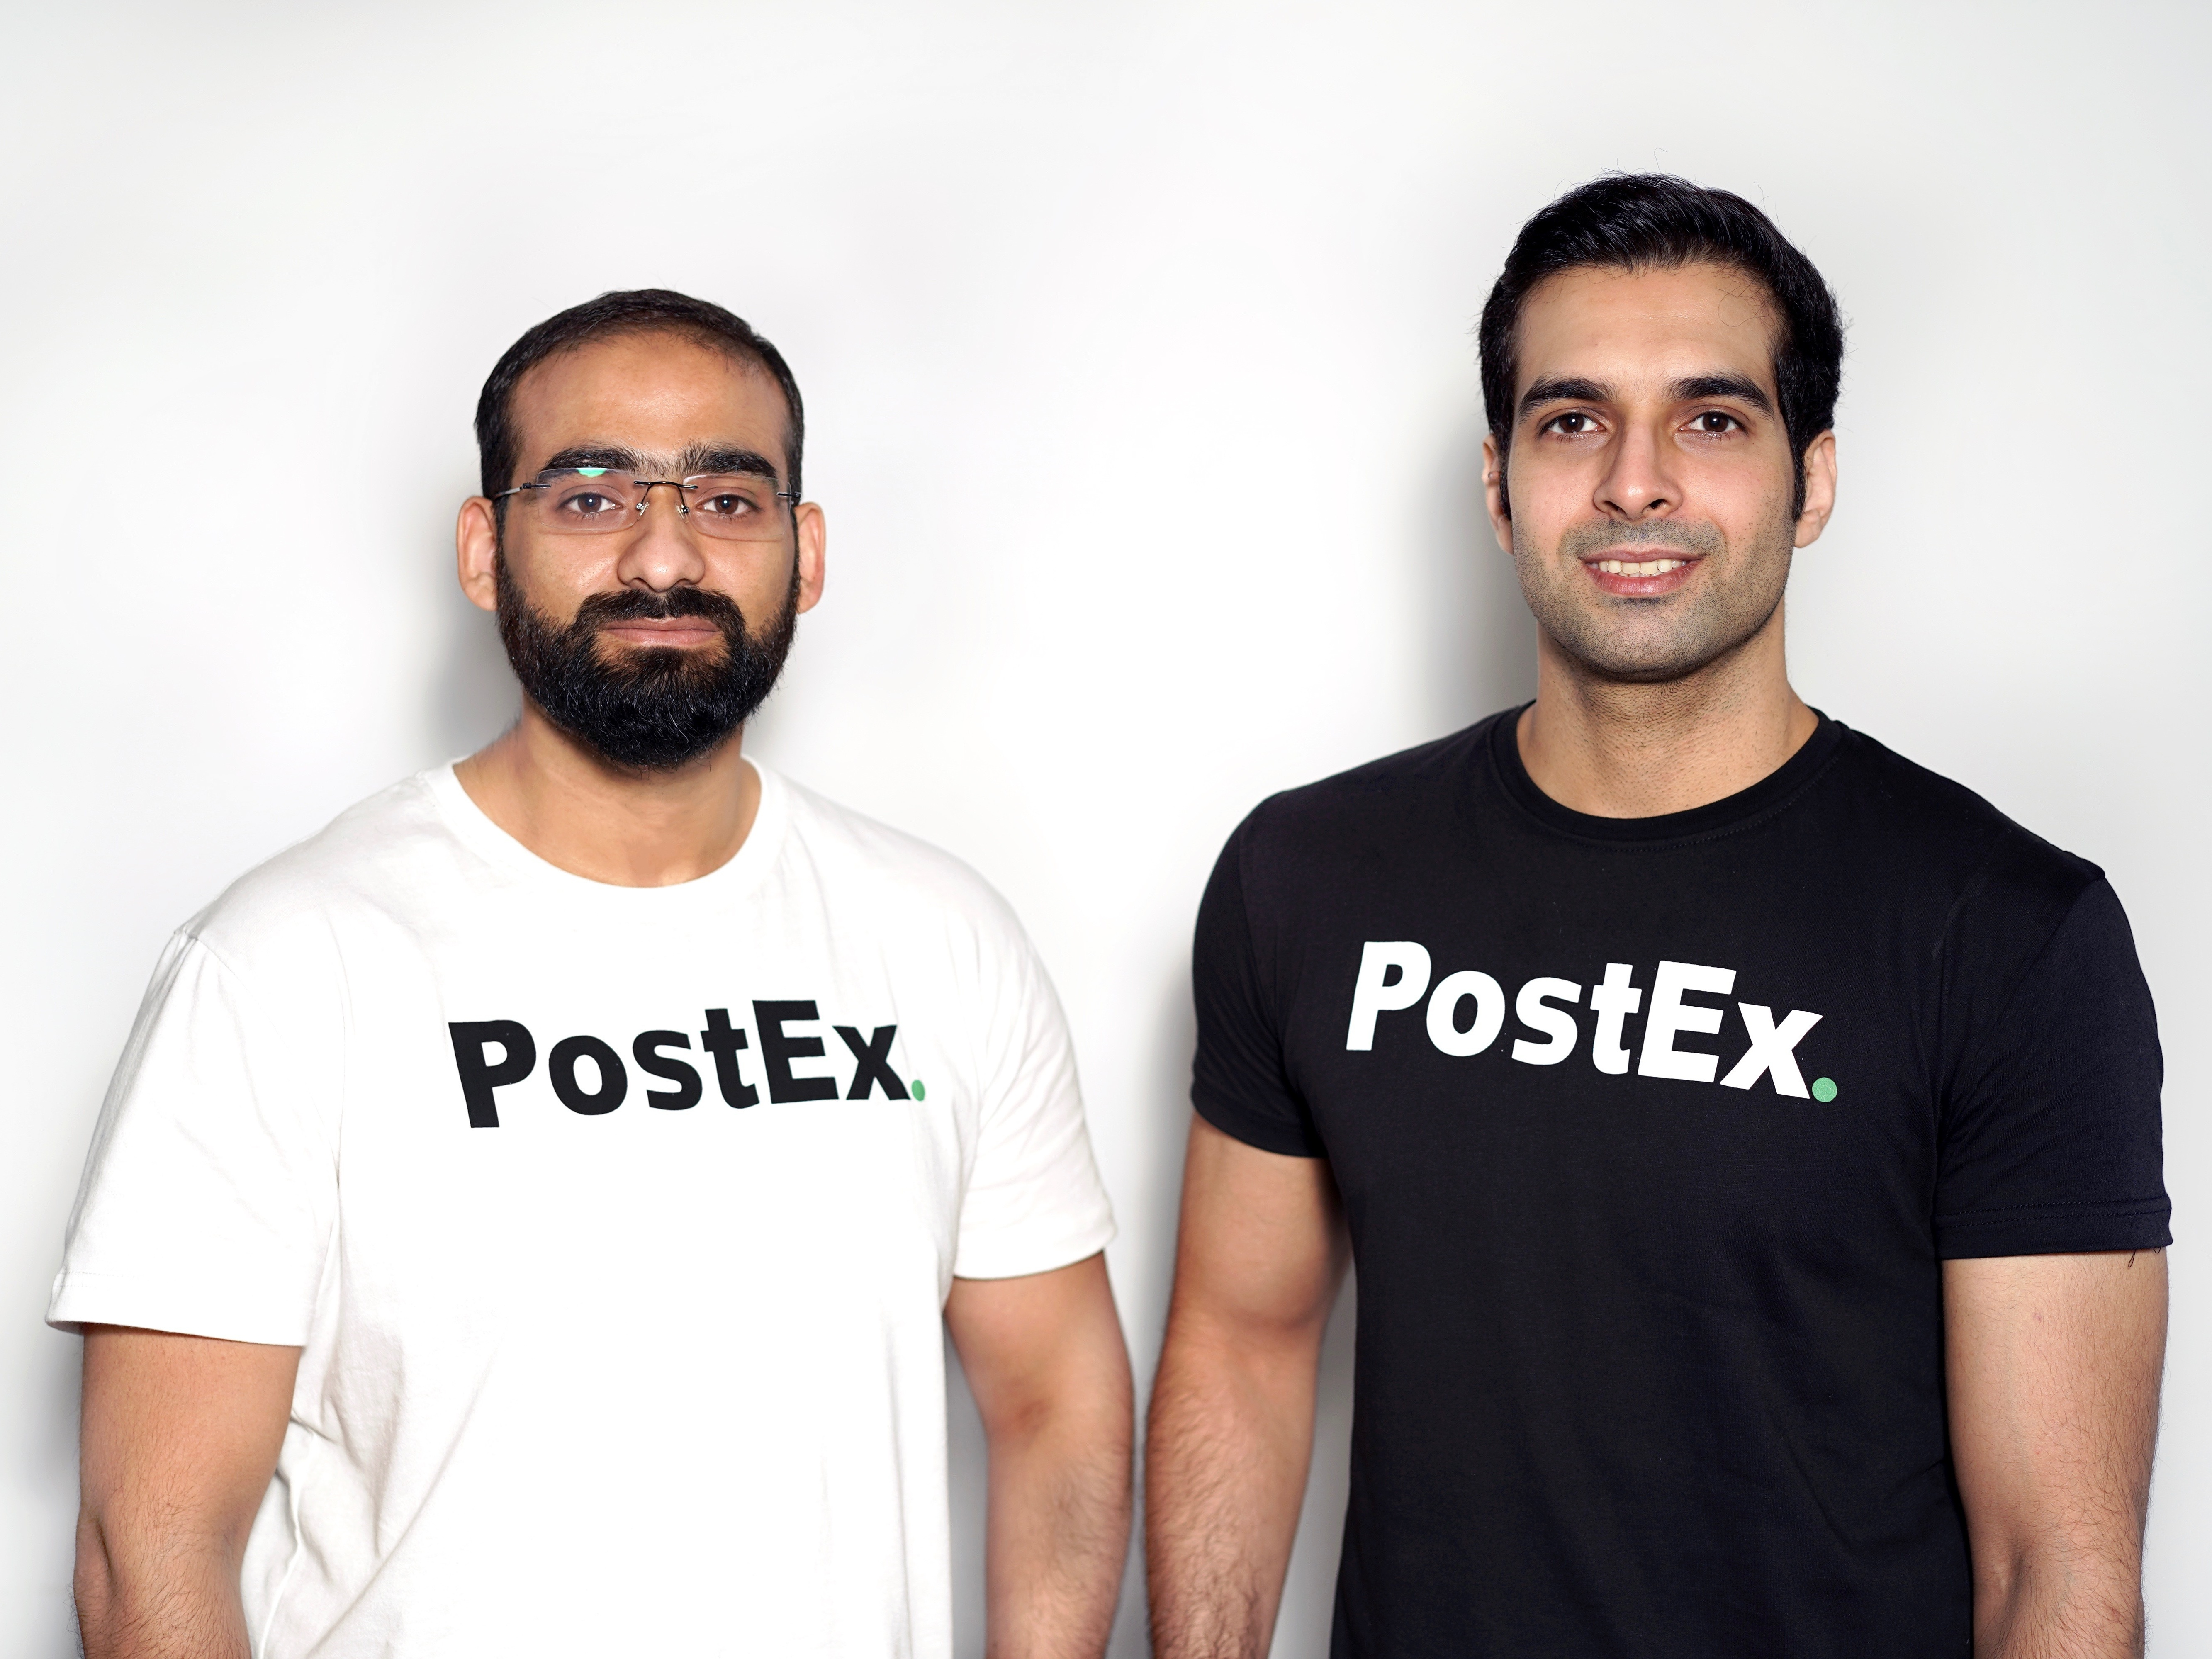 PostEx raises six-figure Pre-Seed round and aims to revolutionise Pakistan's E-commerce ecosystem